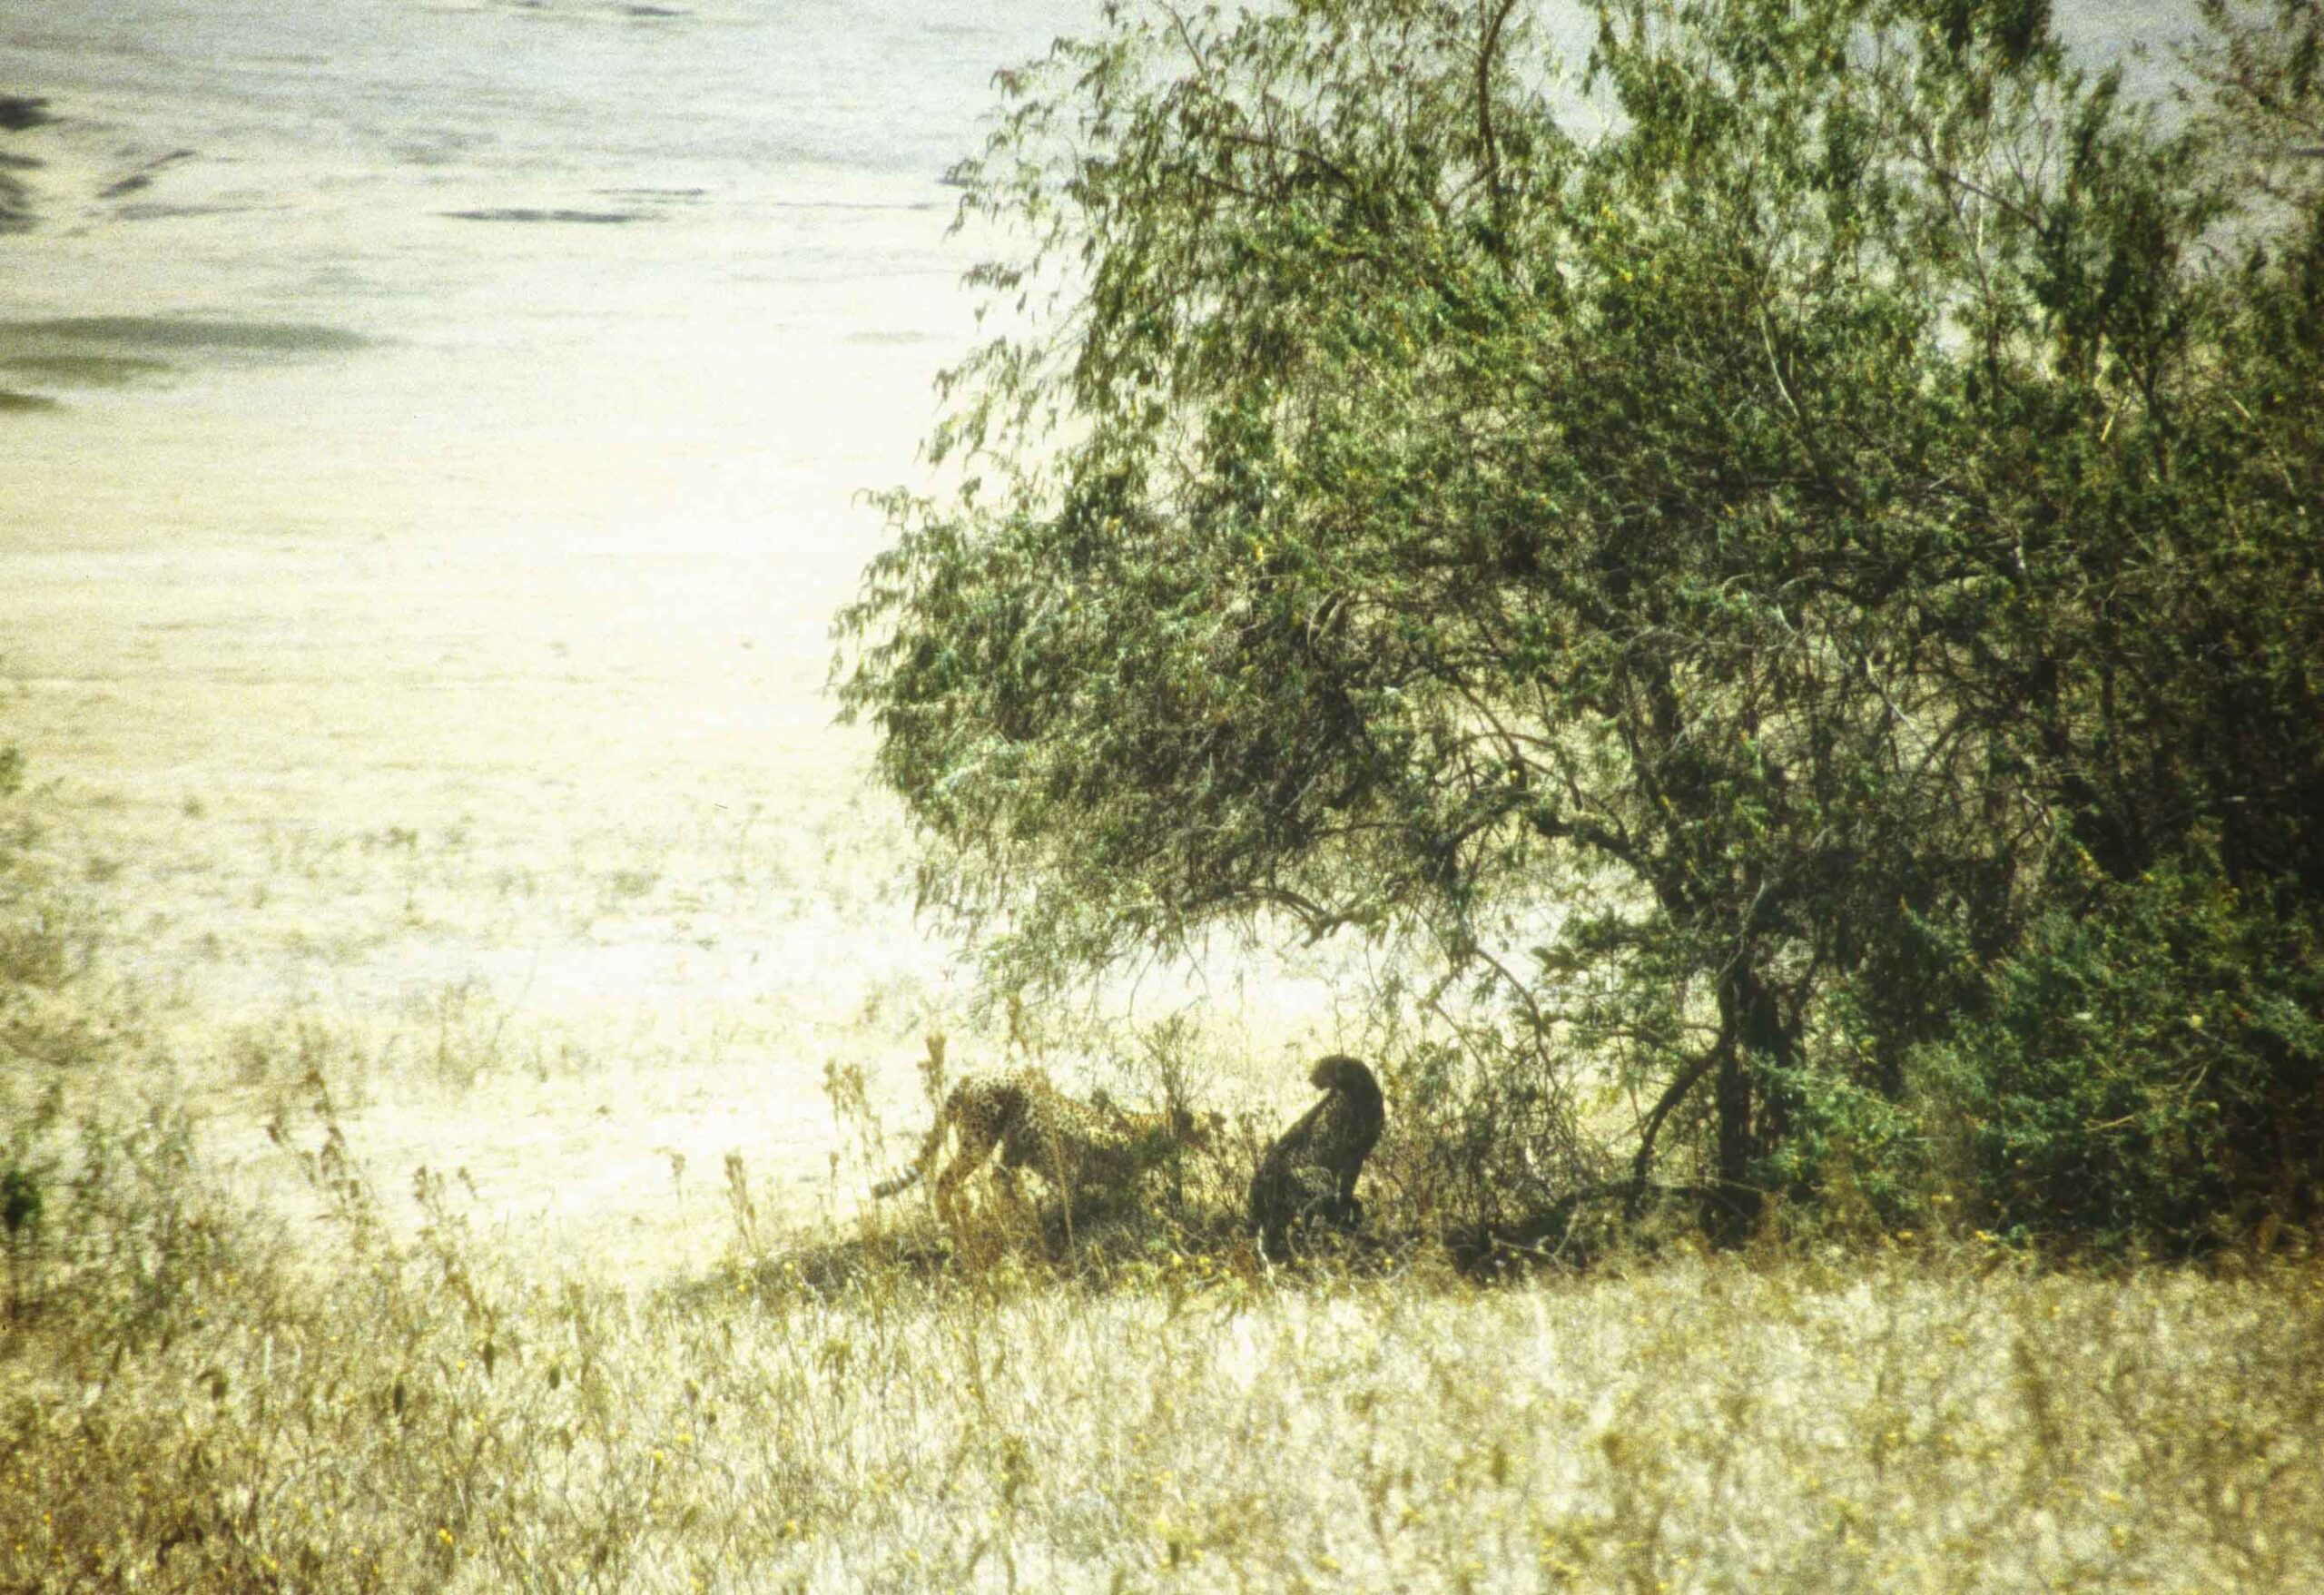 Two leopards in the middle distance under a tree